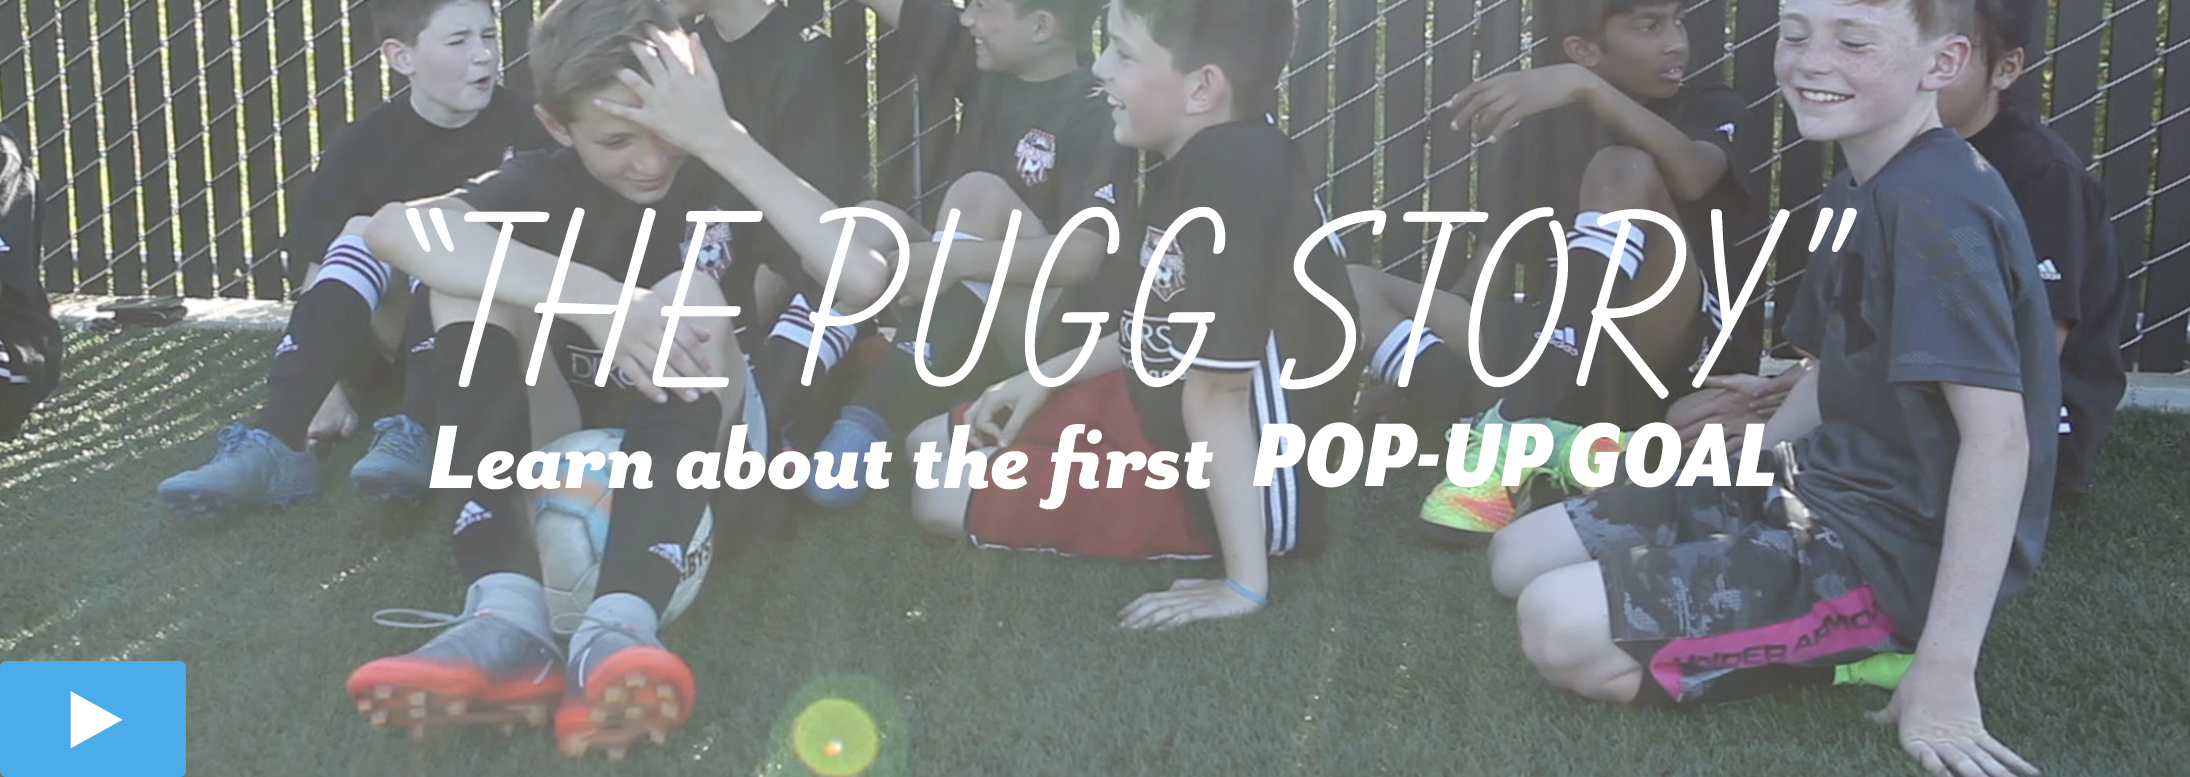 Learn about the first pop up goal